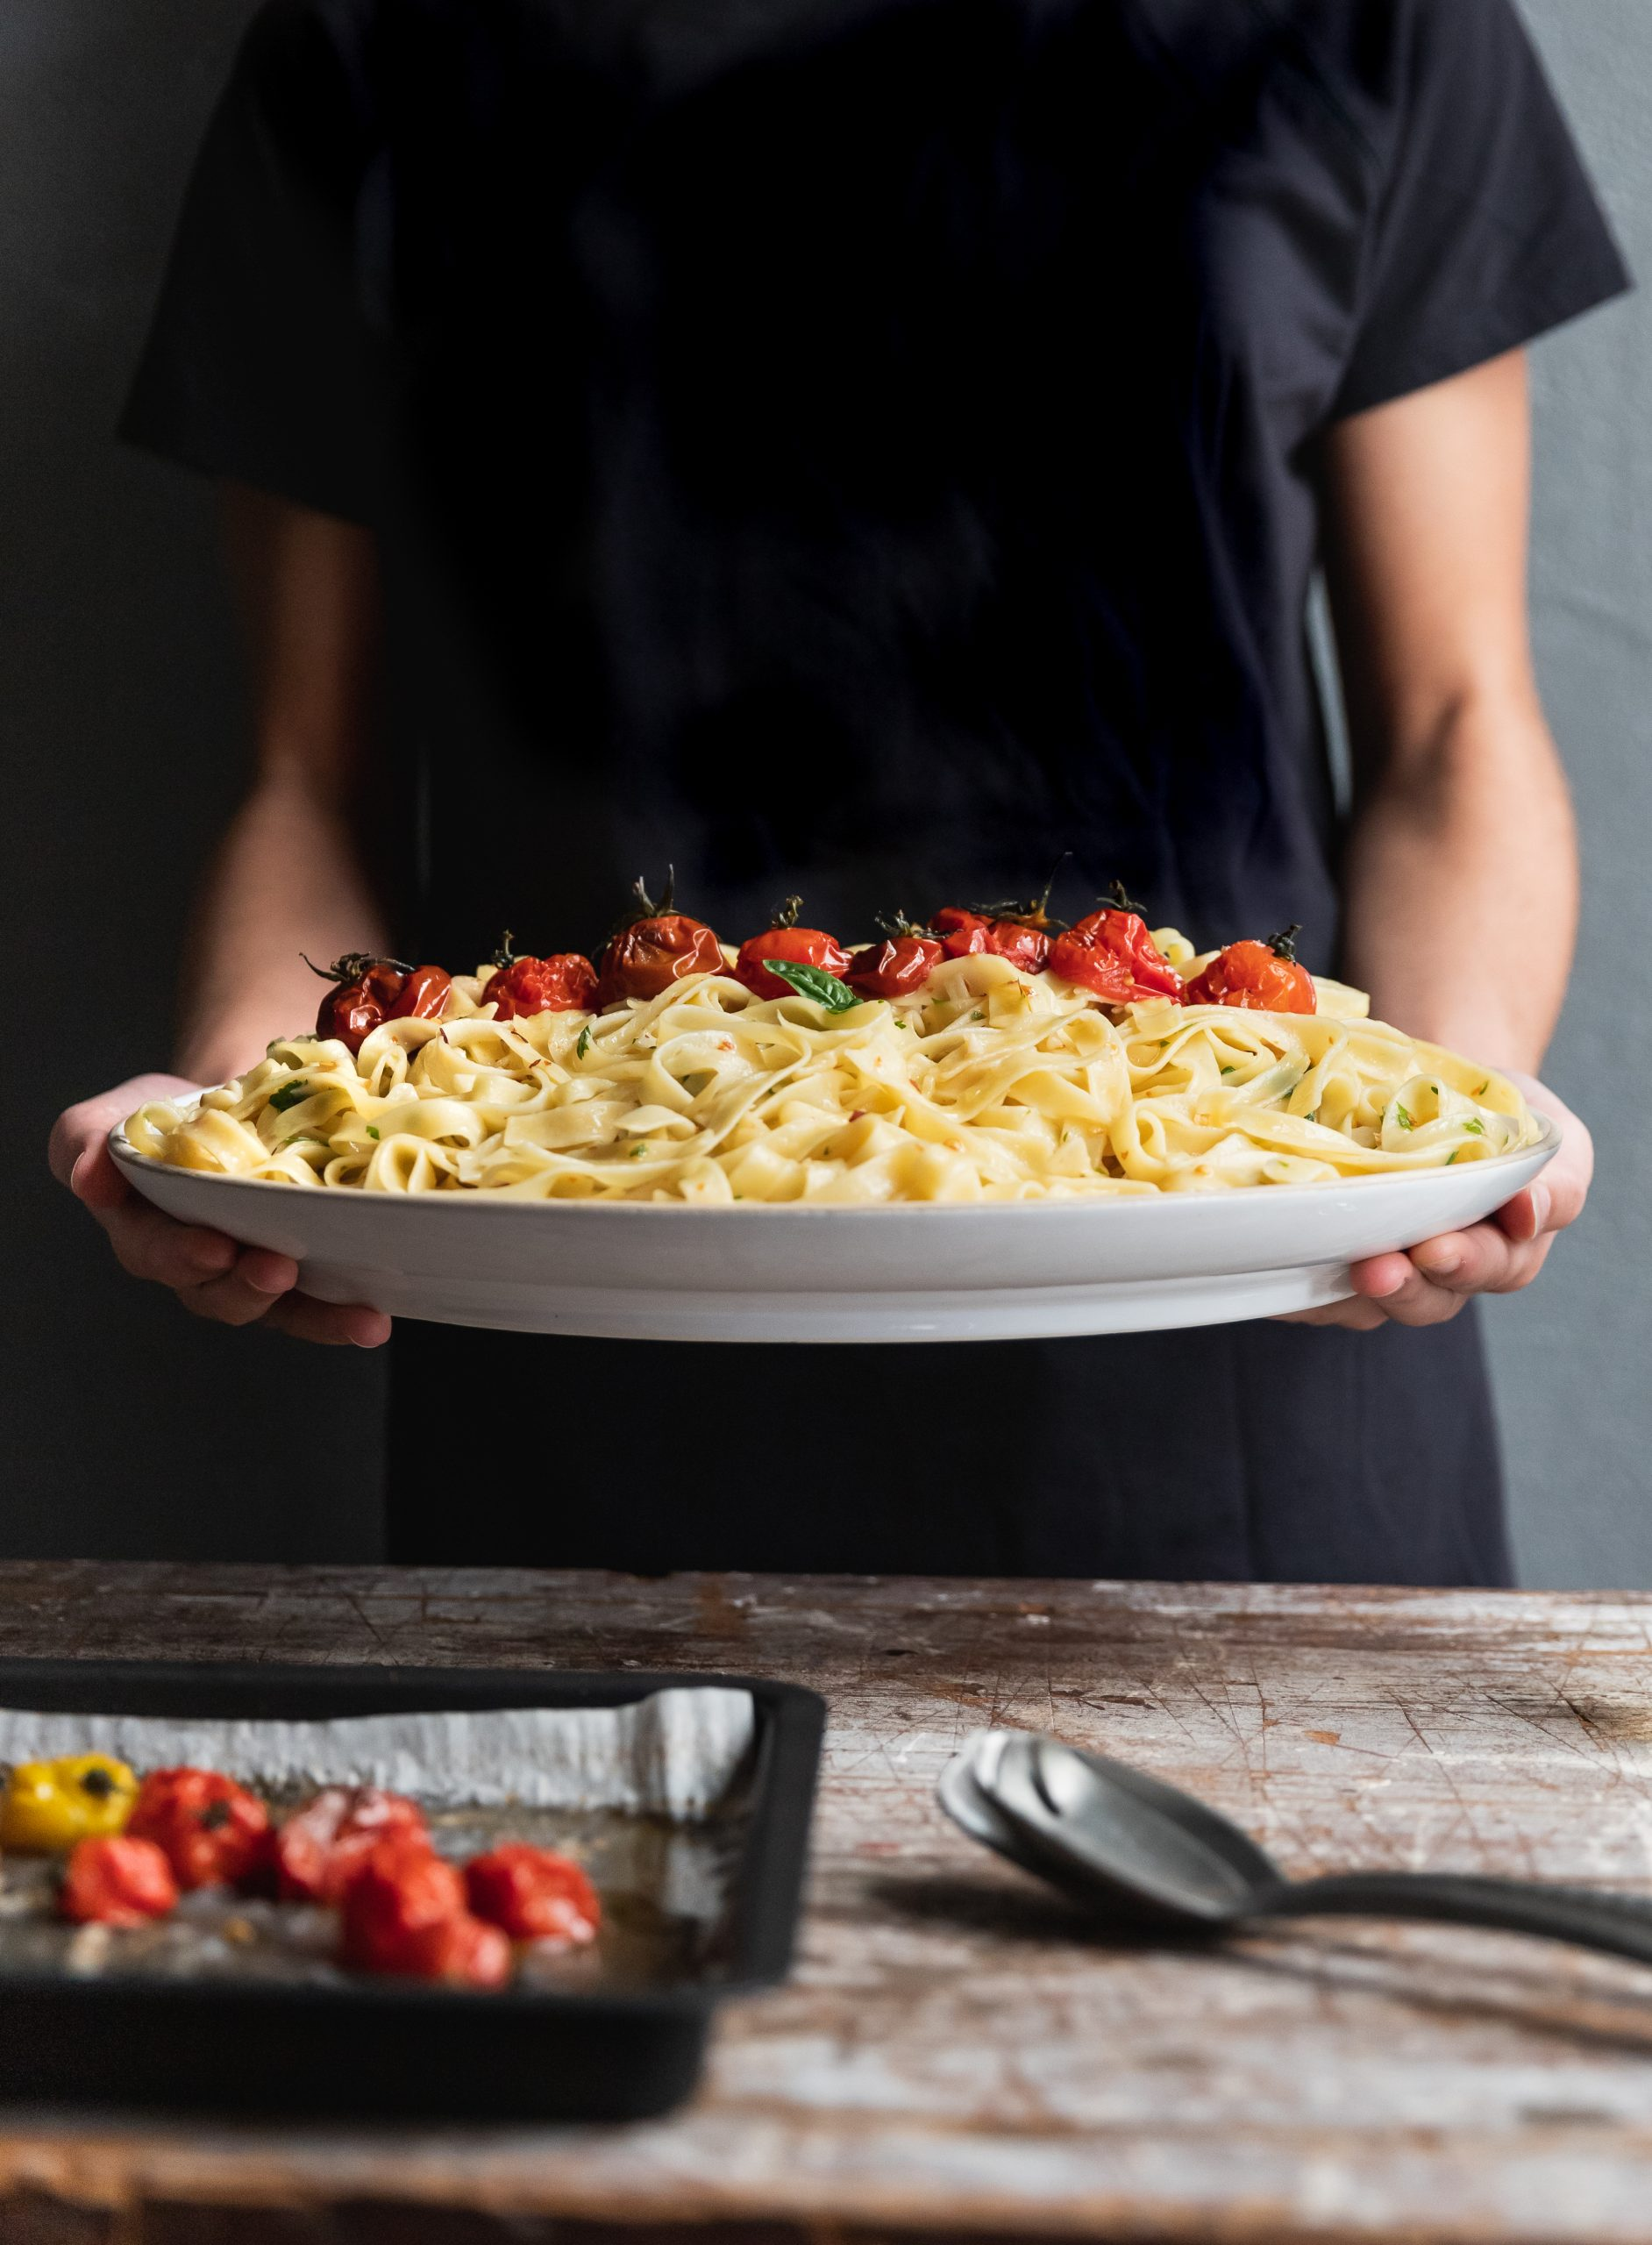 Pasta Aglio e Olio with Tomatoes (Fried Garlic and Red Pepper Olive Oil Pasta)